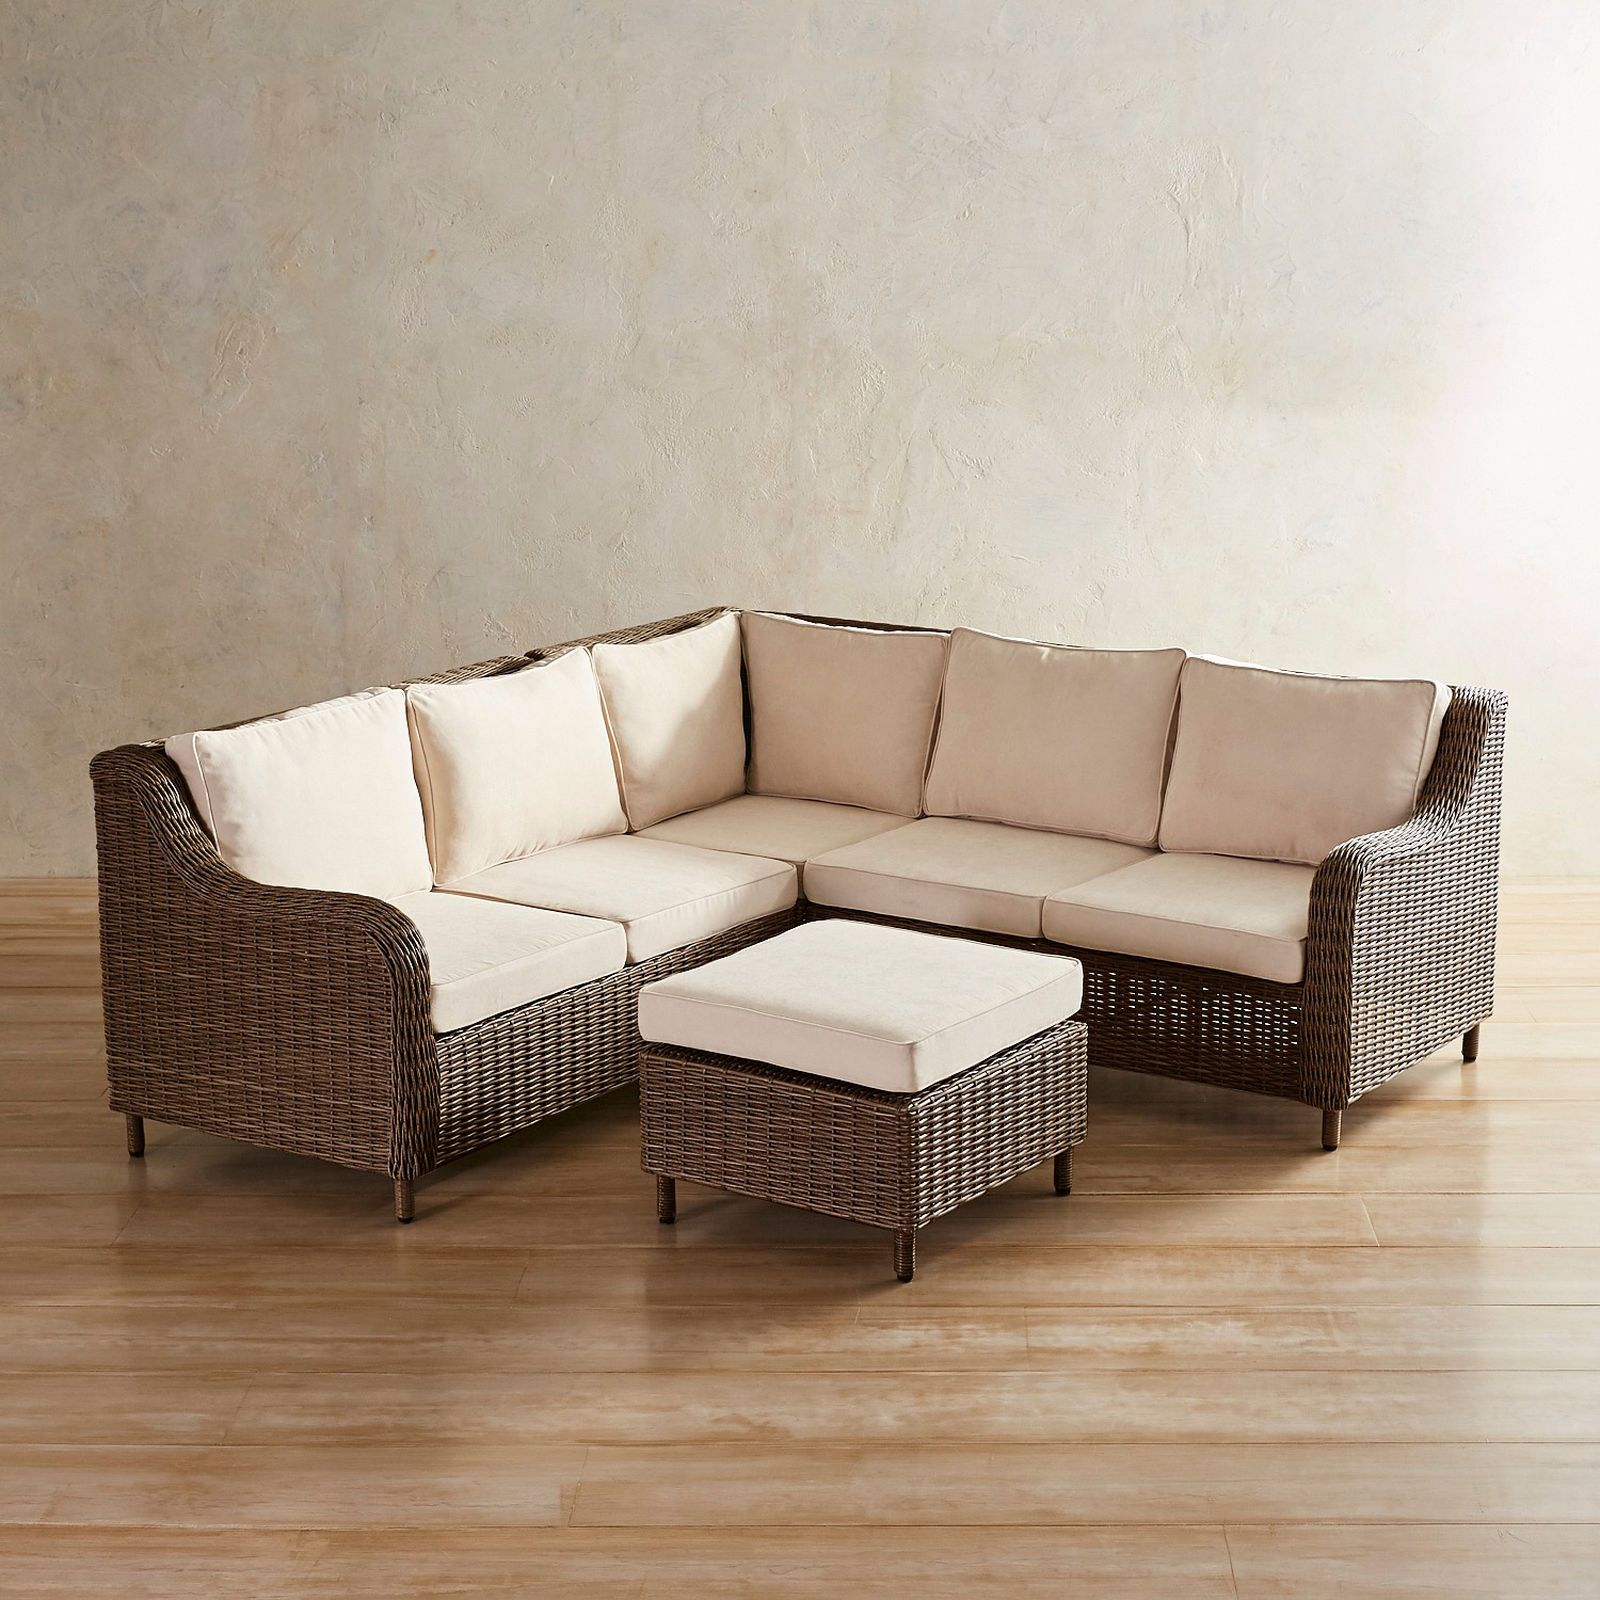 Crestview Espresso 4 Piece Sectional - Pier 1 Imports